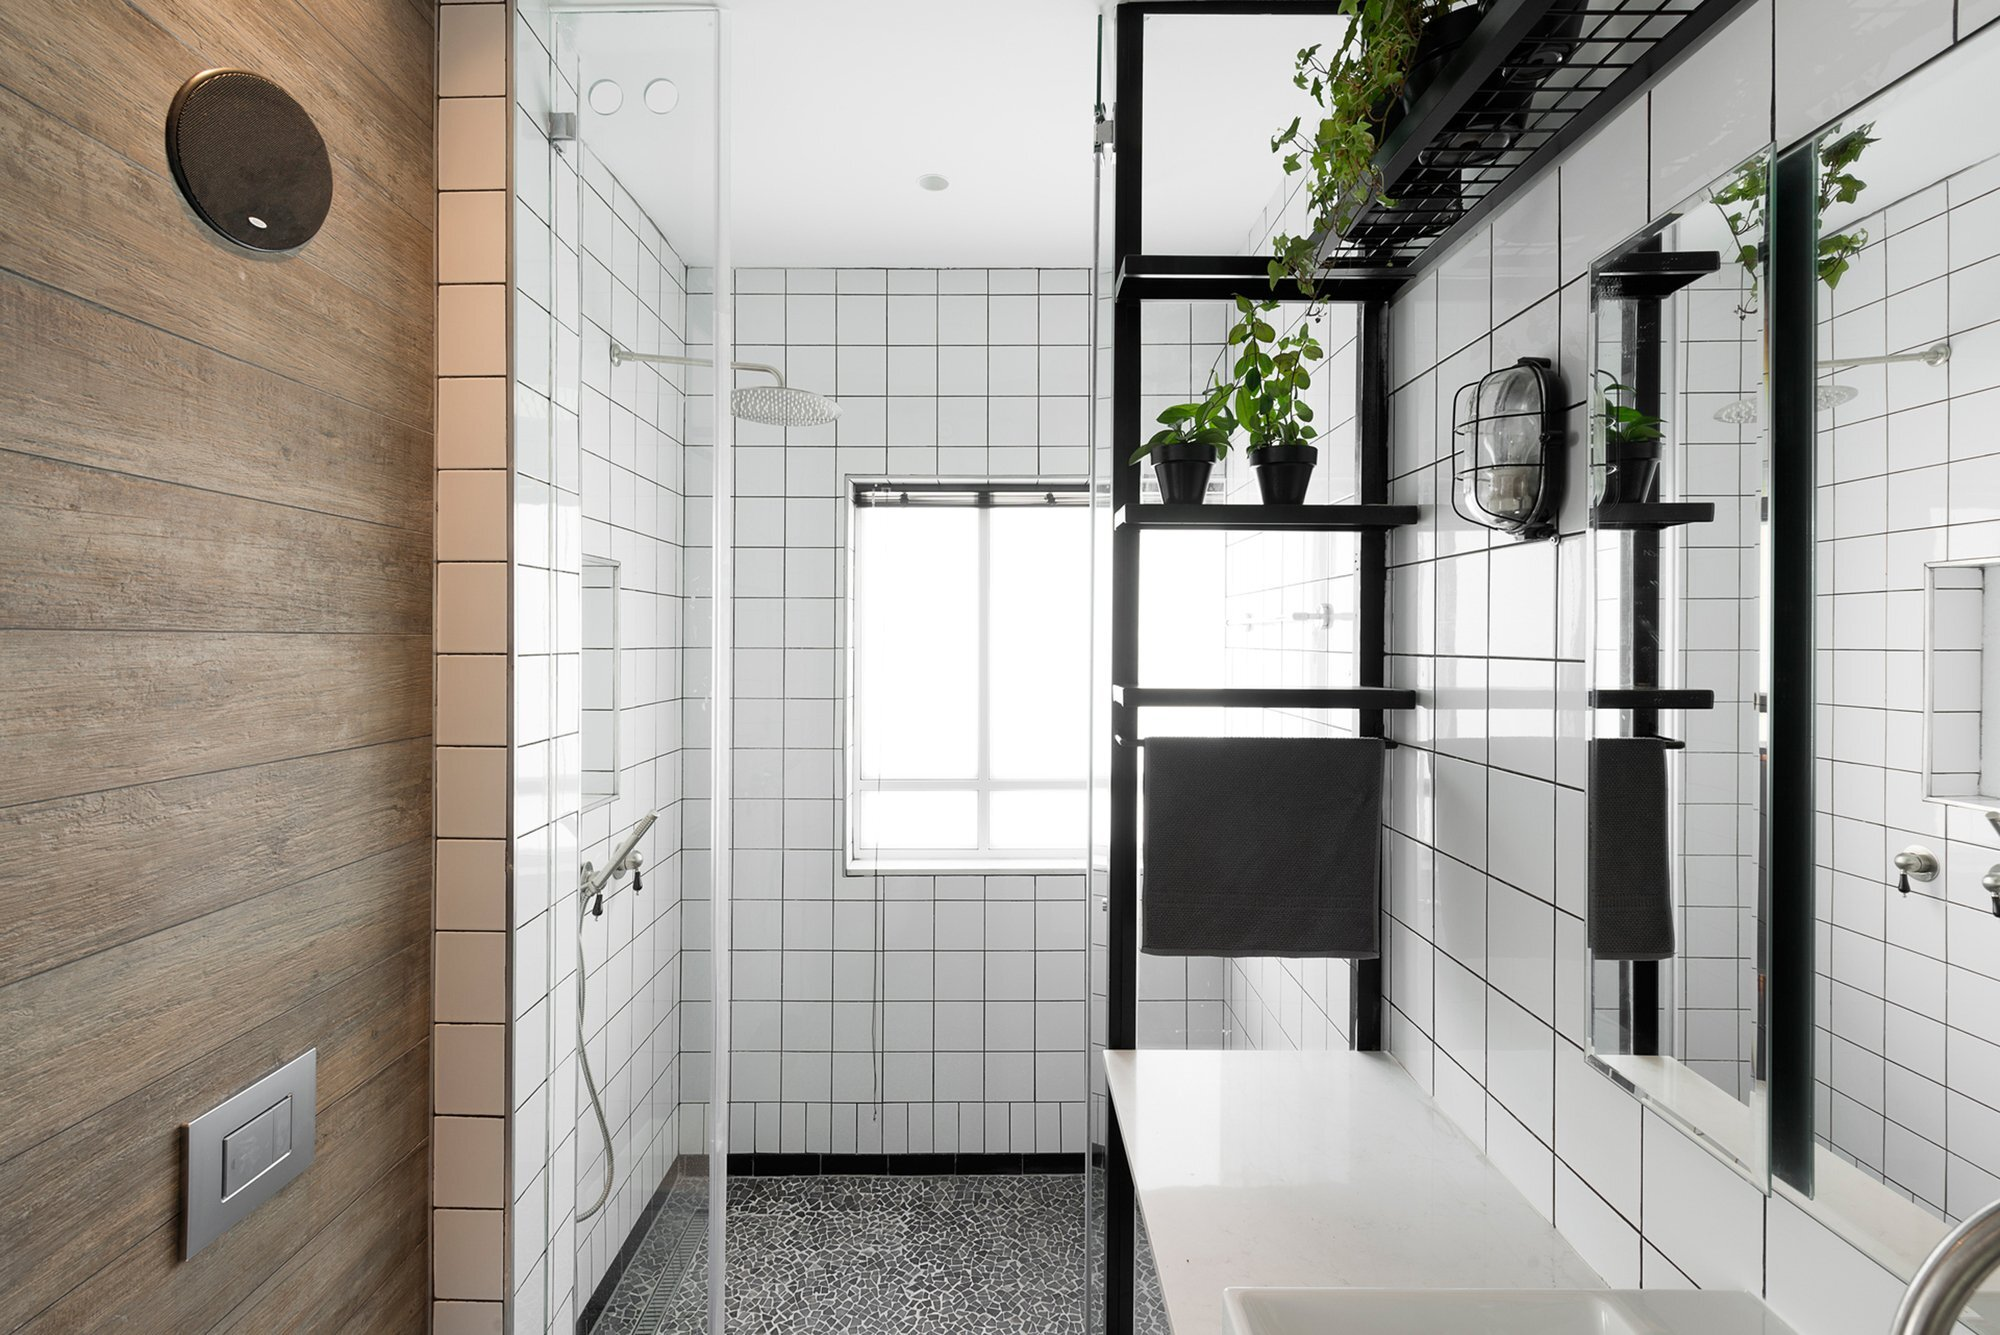 Raanan Stern S Bauhaus Inspired 800 Square Foot Apartment